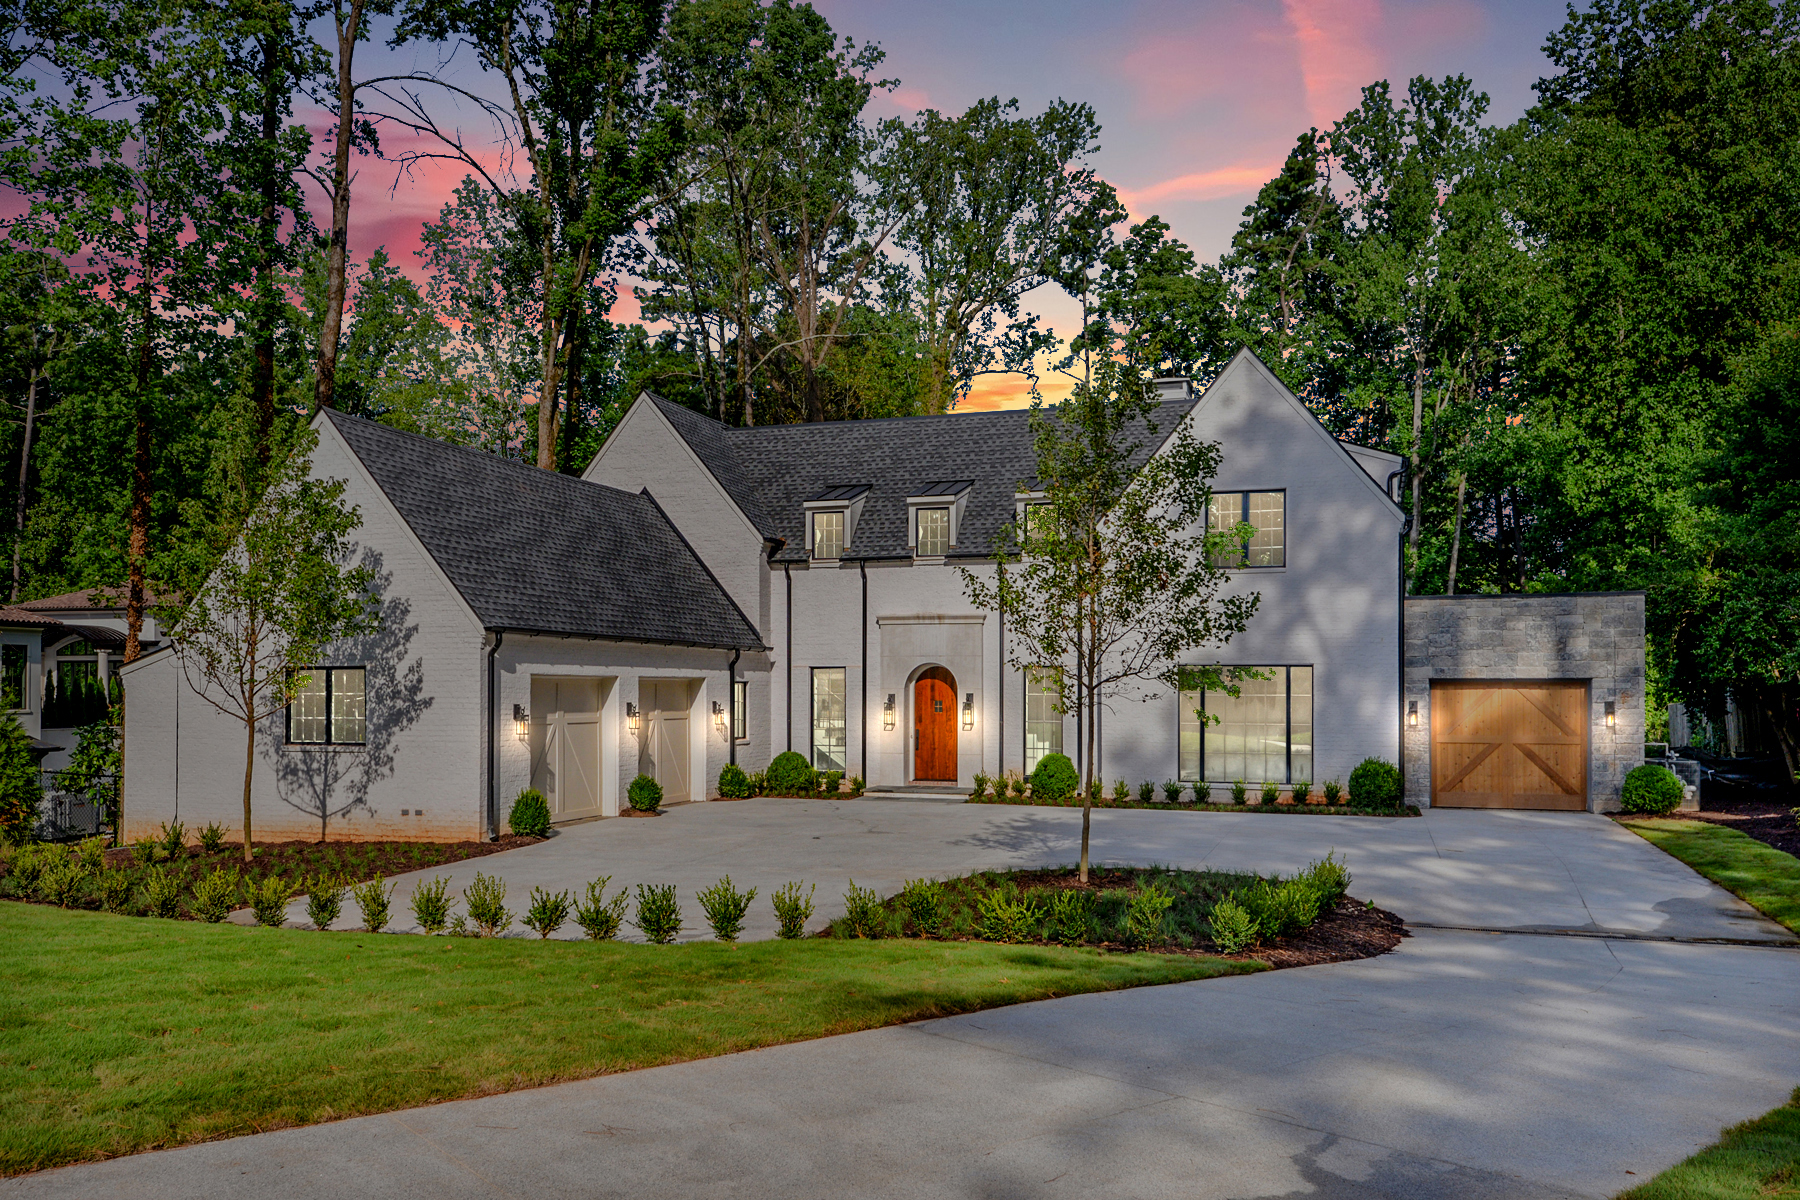 Single Family Homes for Active at Classic Traditional Design With A Contemporary Edge 4560 Peachtree Dunwoody Road NE Sandy Springs, Georgia 30342 United States